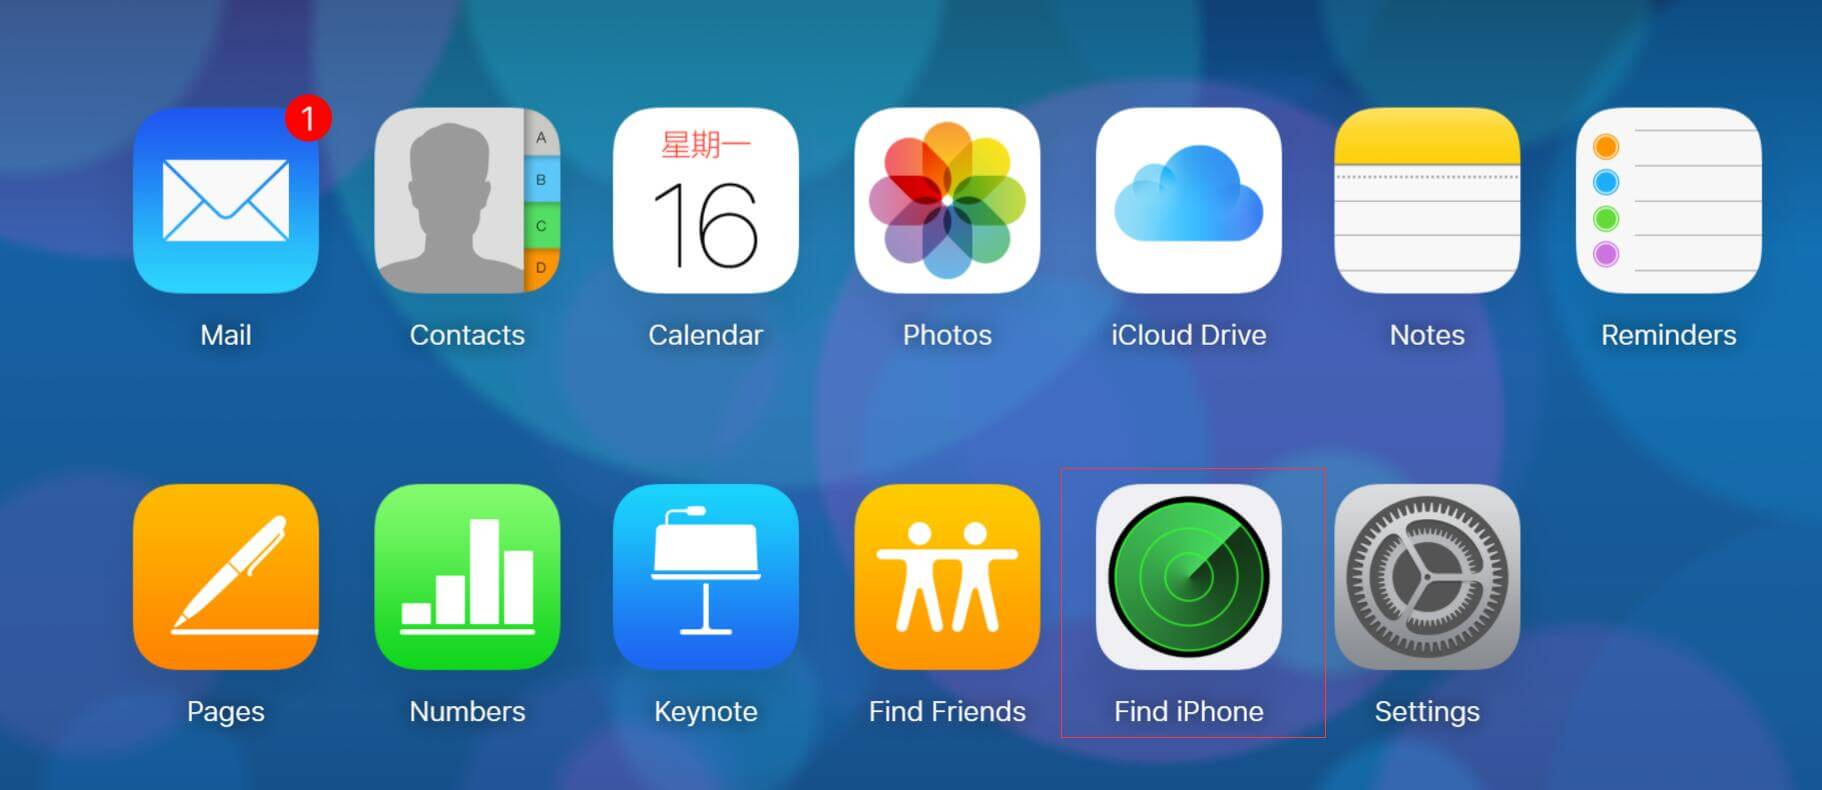 how to restore ipad with find my ipad on